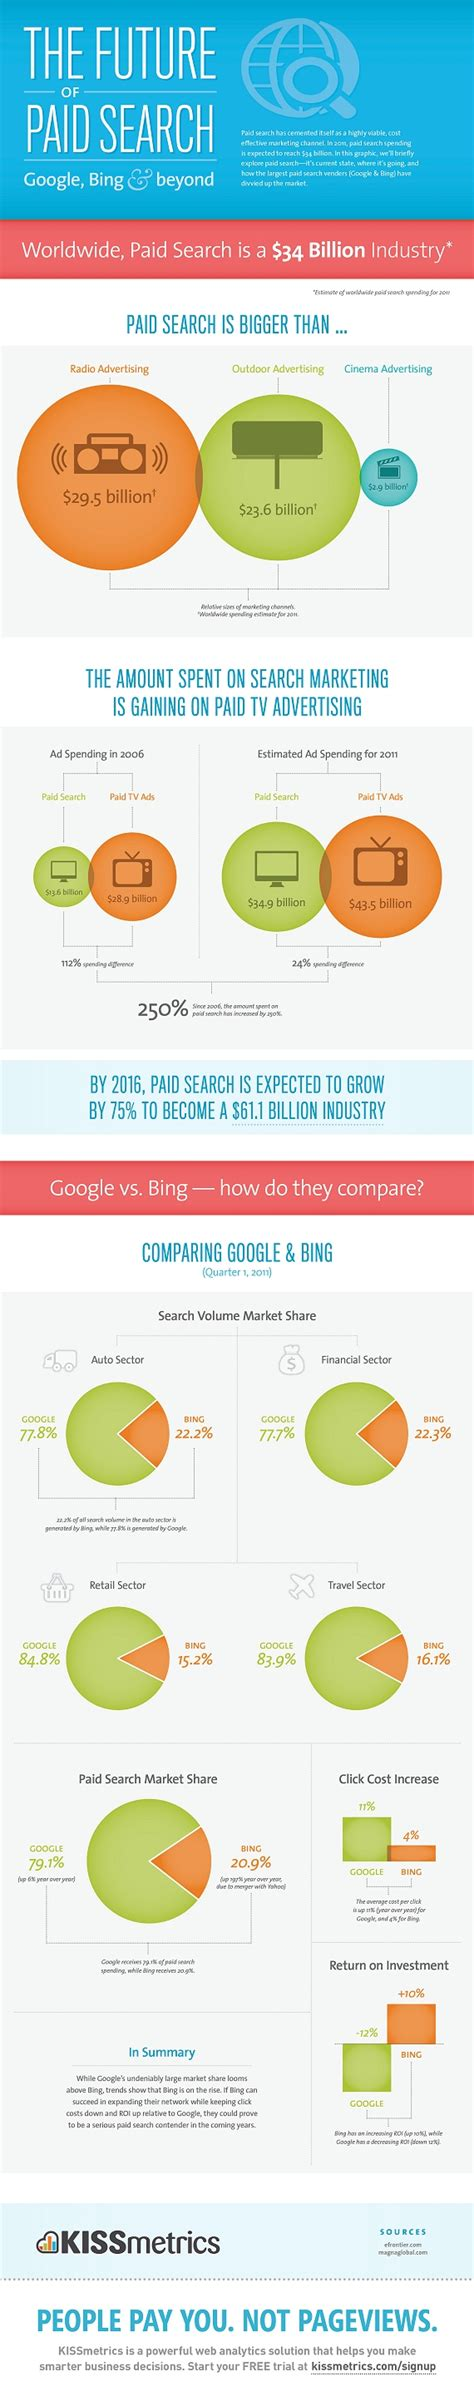 Paid Search Future Of Search Infographic Ppc Plans